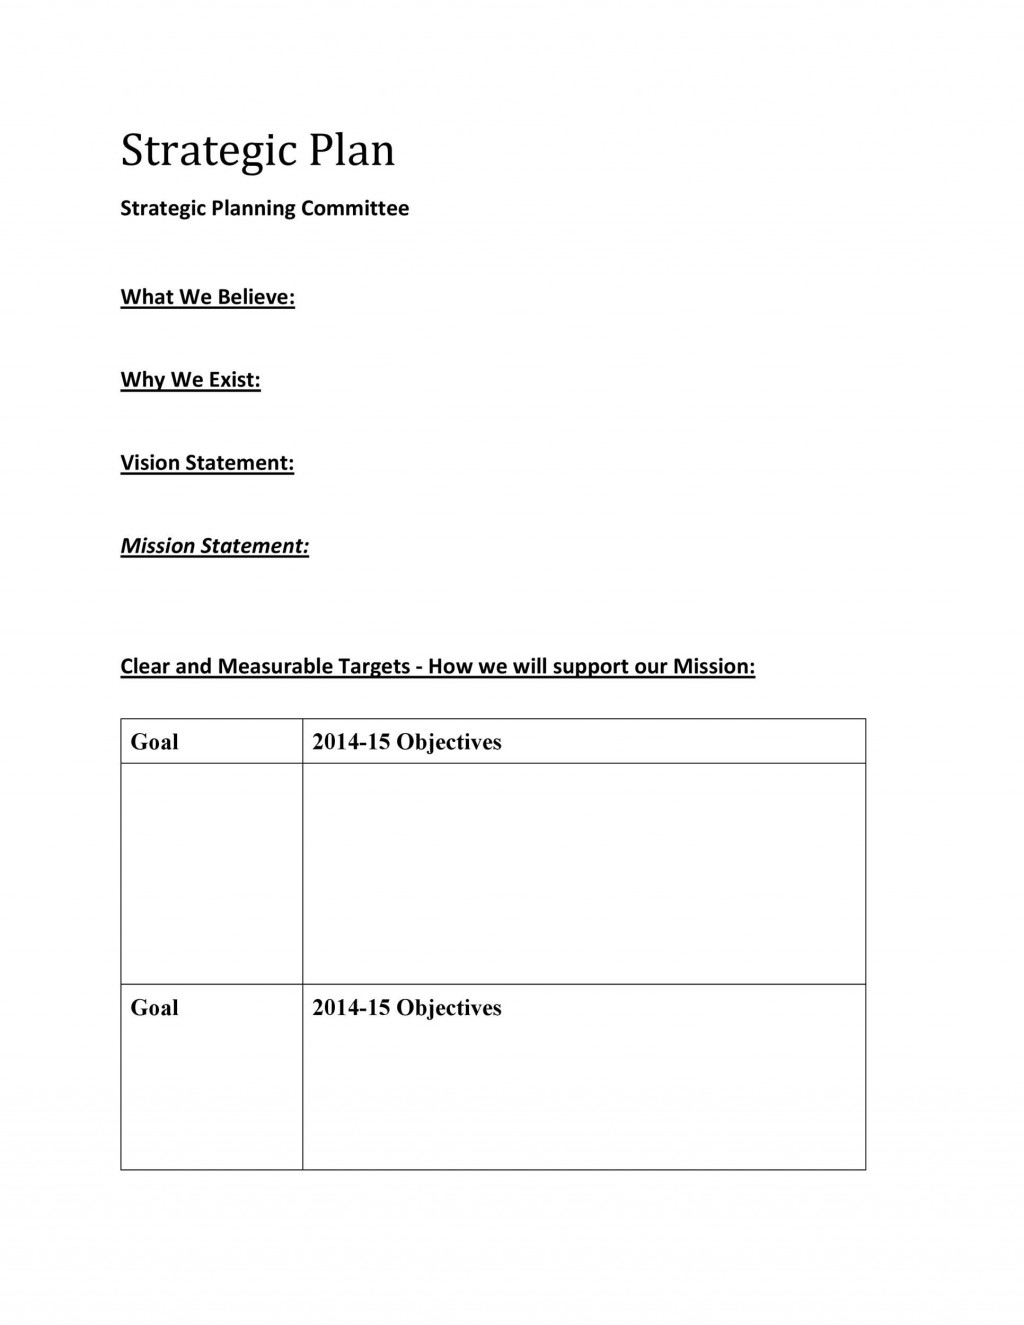 008 Top Strategic Plan Template Word Image  Format Busines DocLarge